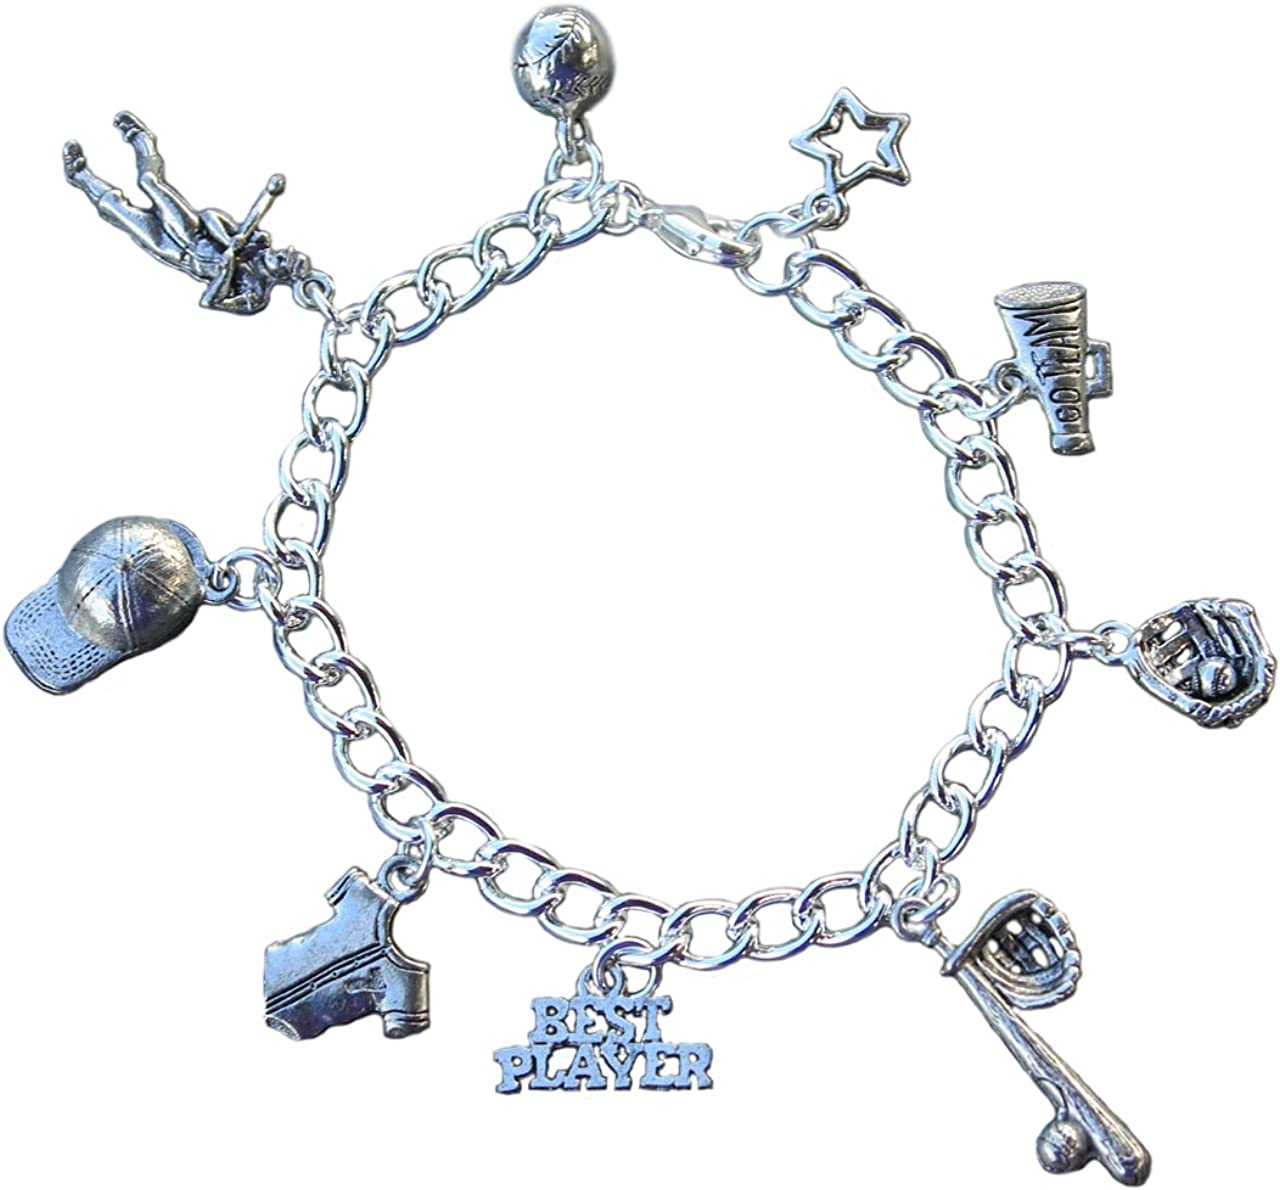 Baseball Bat Charm Charms for Bracelets and Necklaces